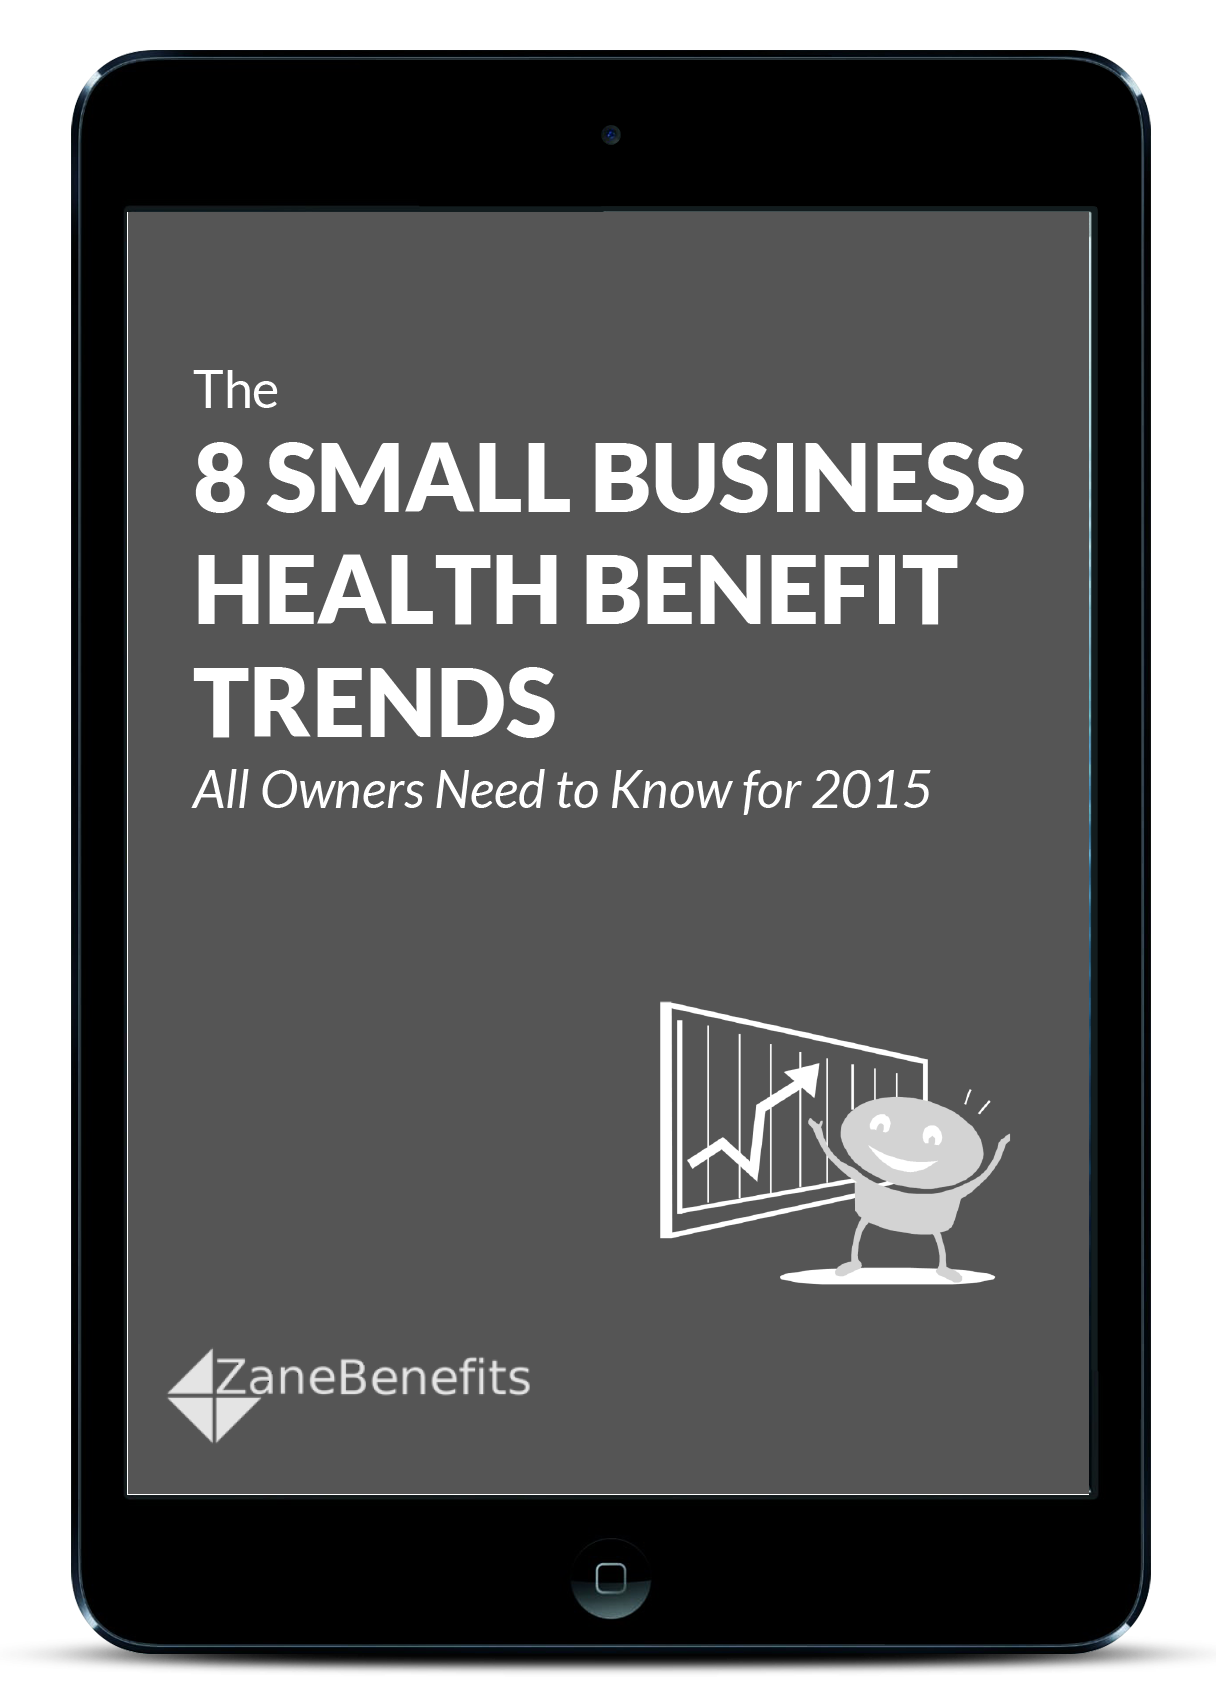 The 8 Small Business Health Benefit Trends